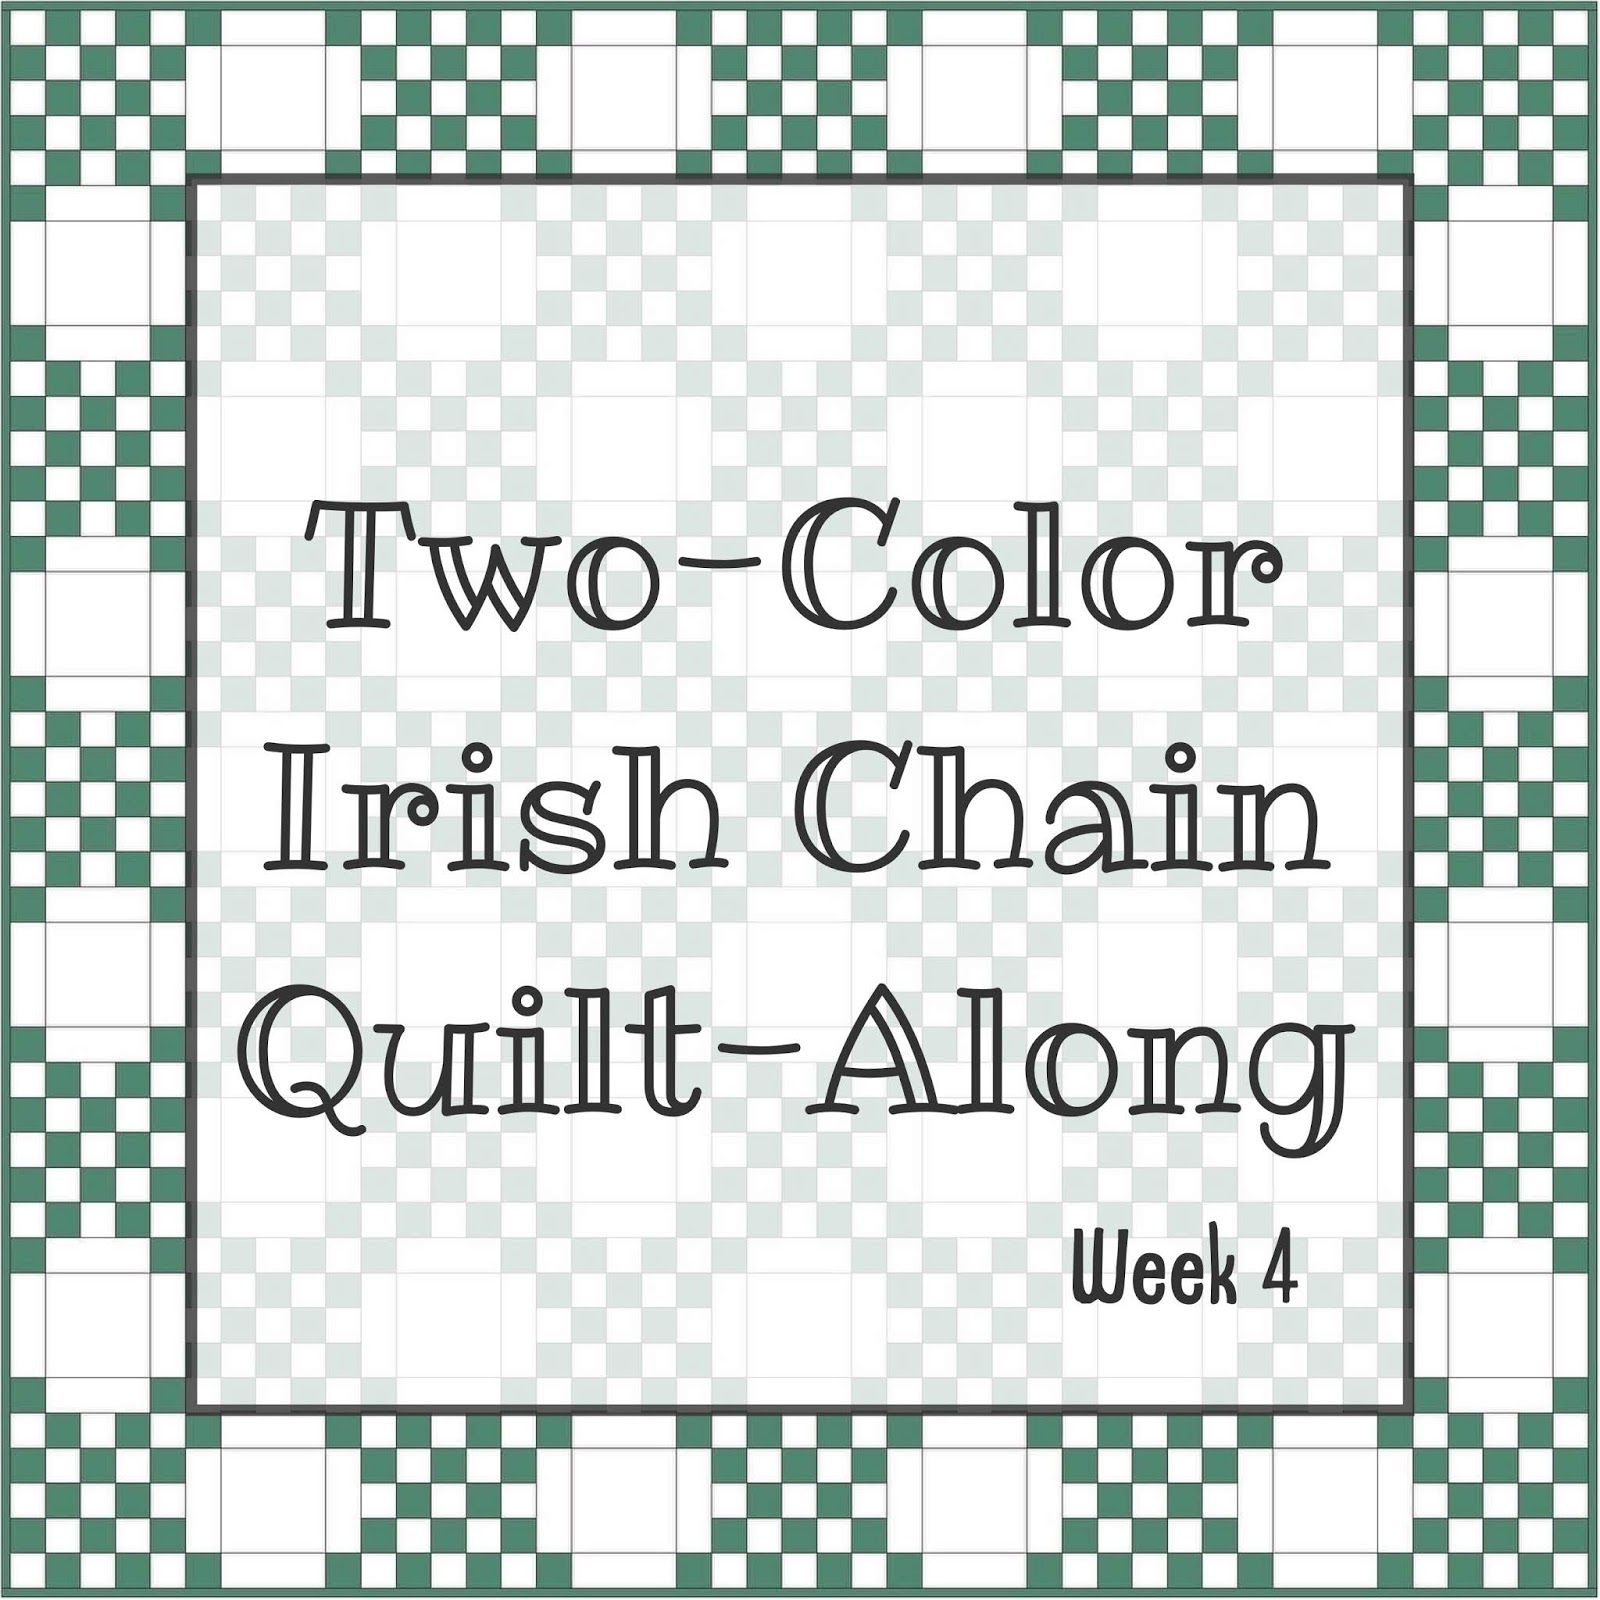 Two Color Irish Chain Quilt Along Week 4 A Little Bit Biased